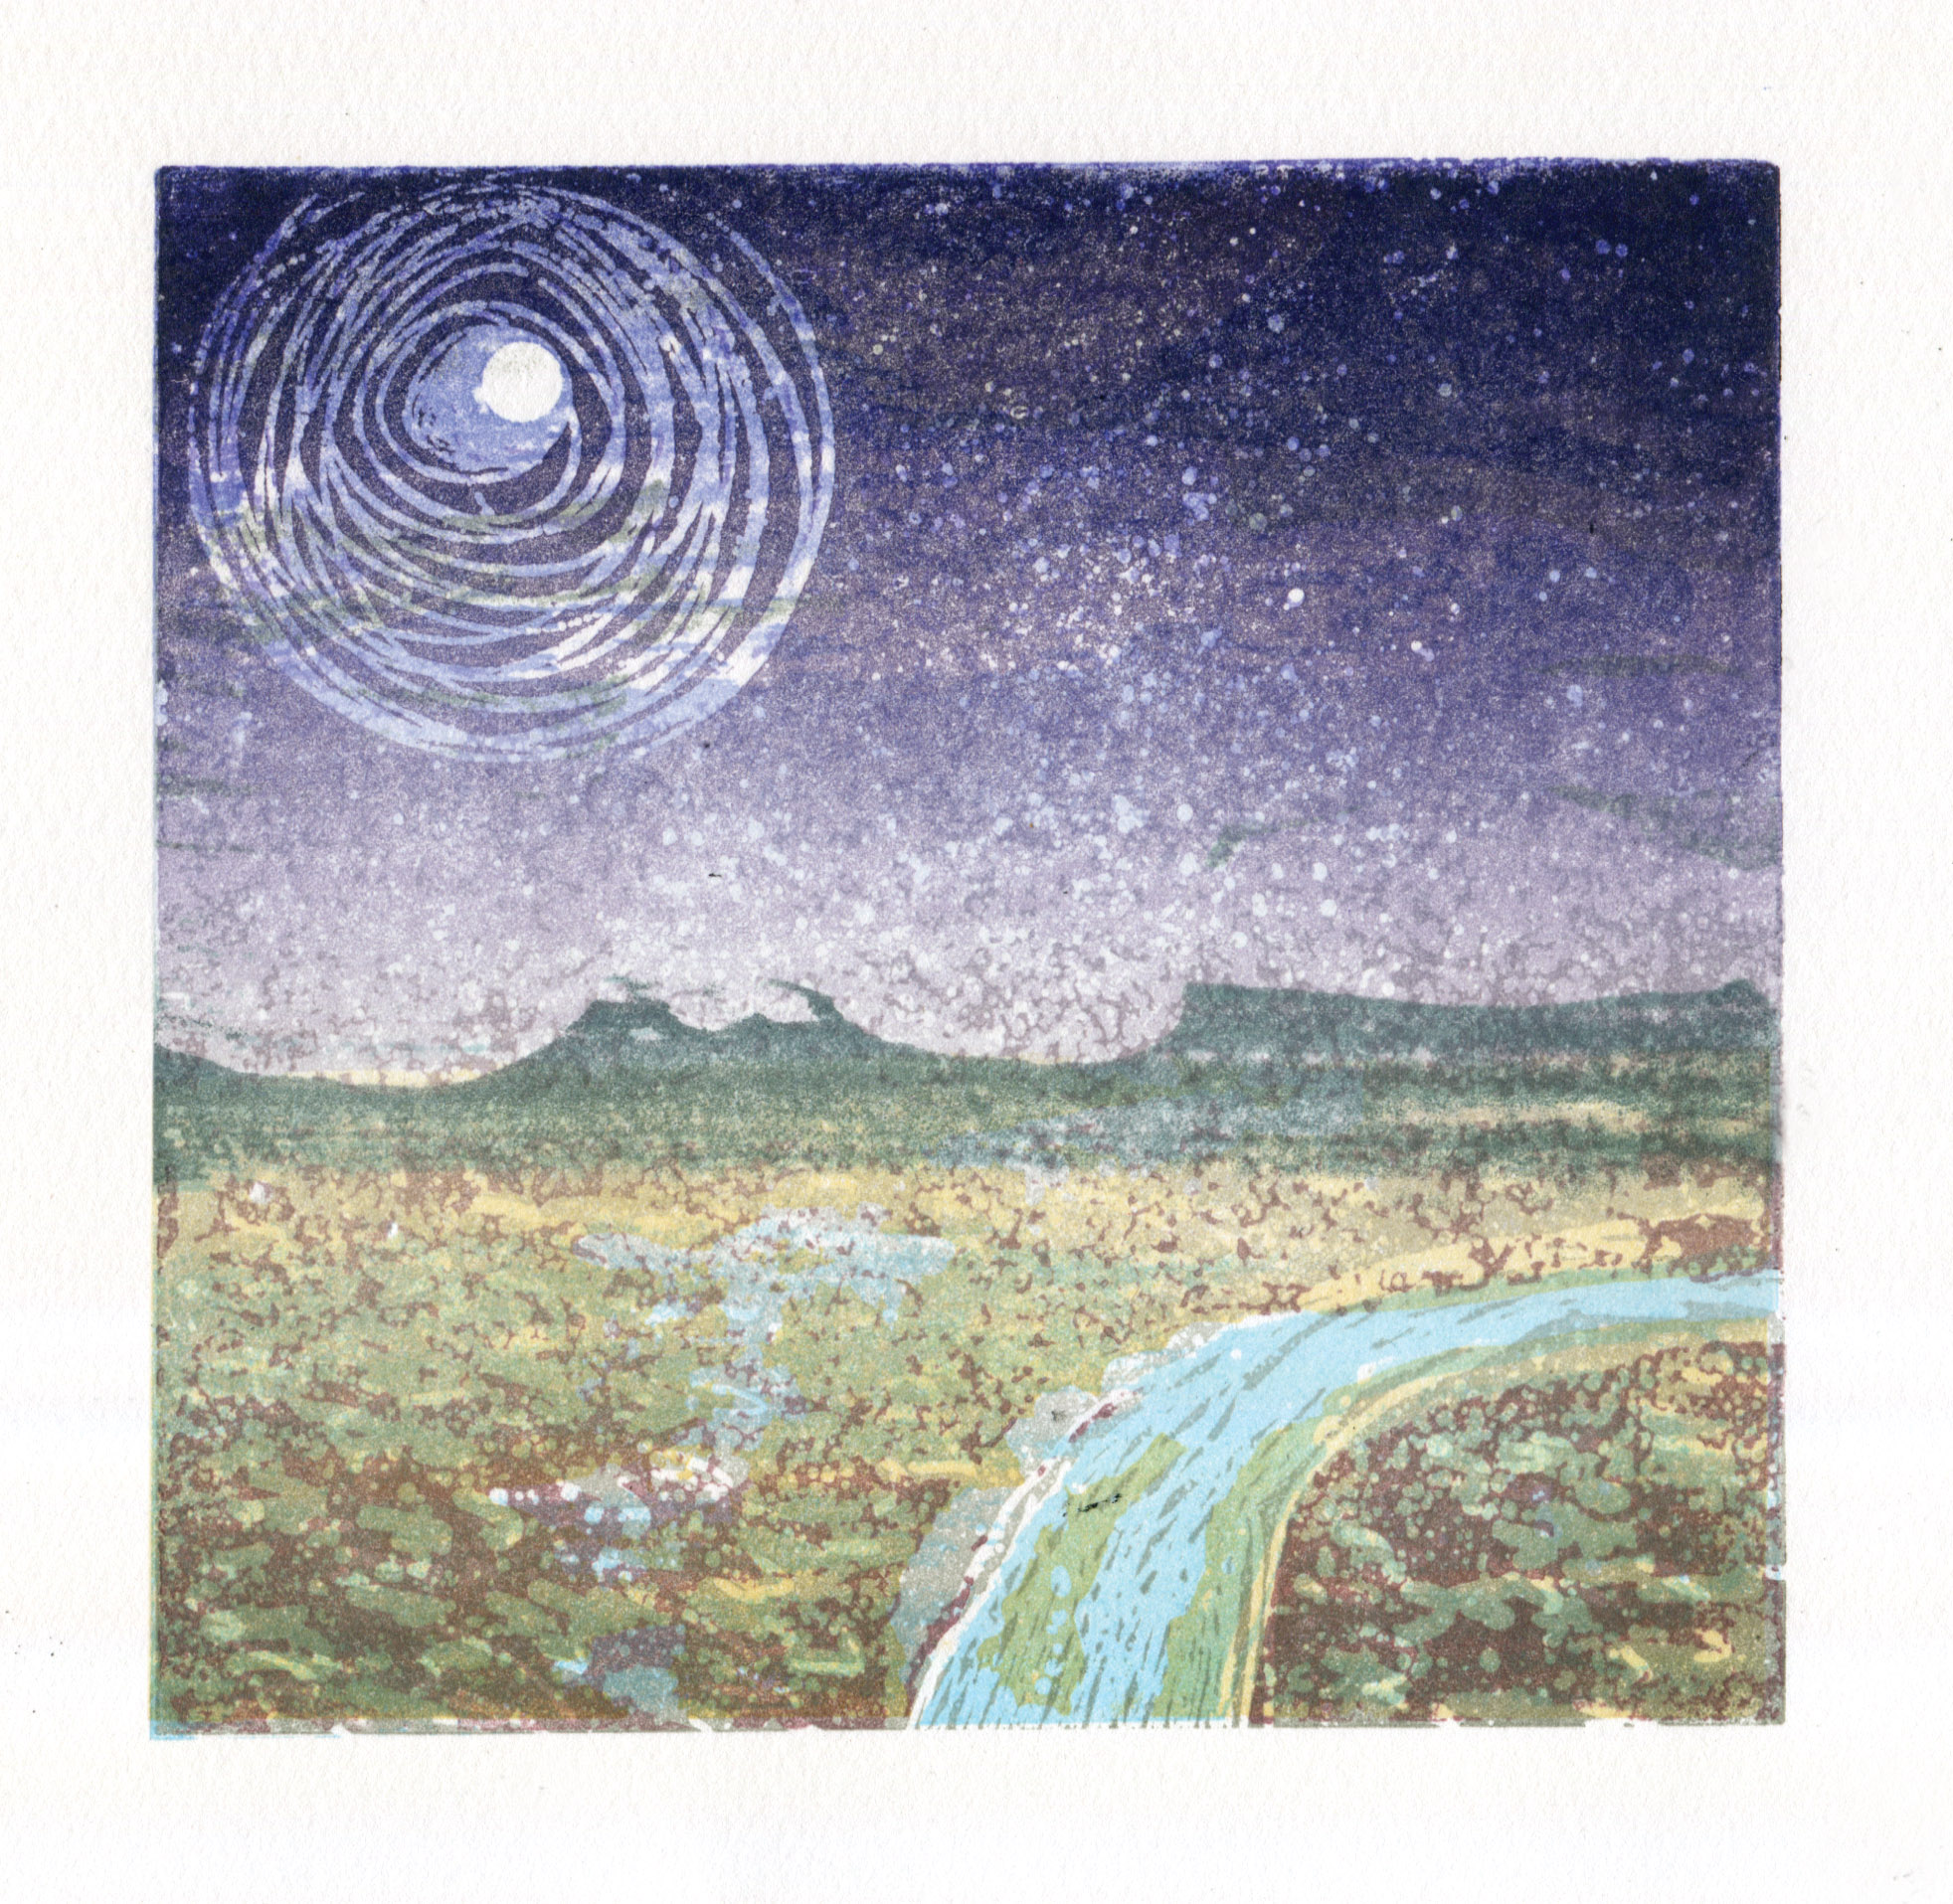 Artwork - Estuary Moon etched and cut lino Print | Steve Edwards - etched and cut lino